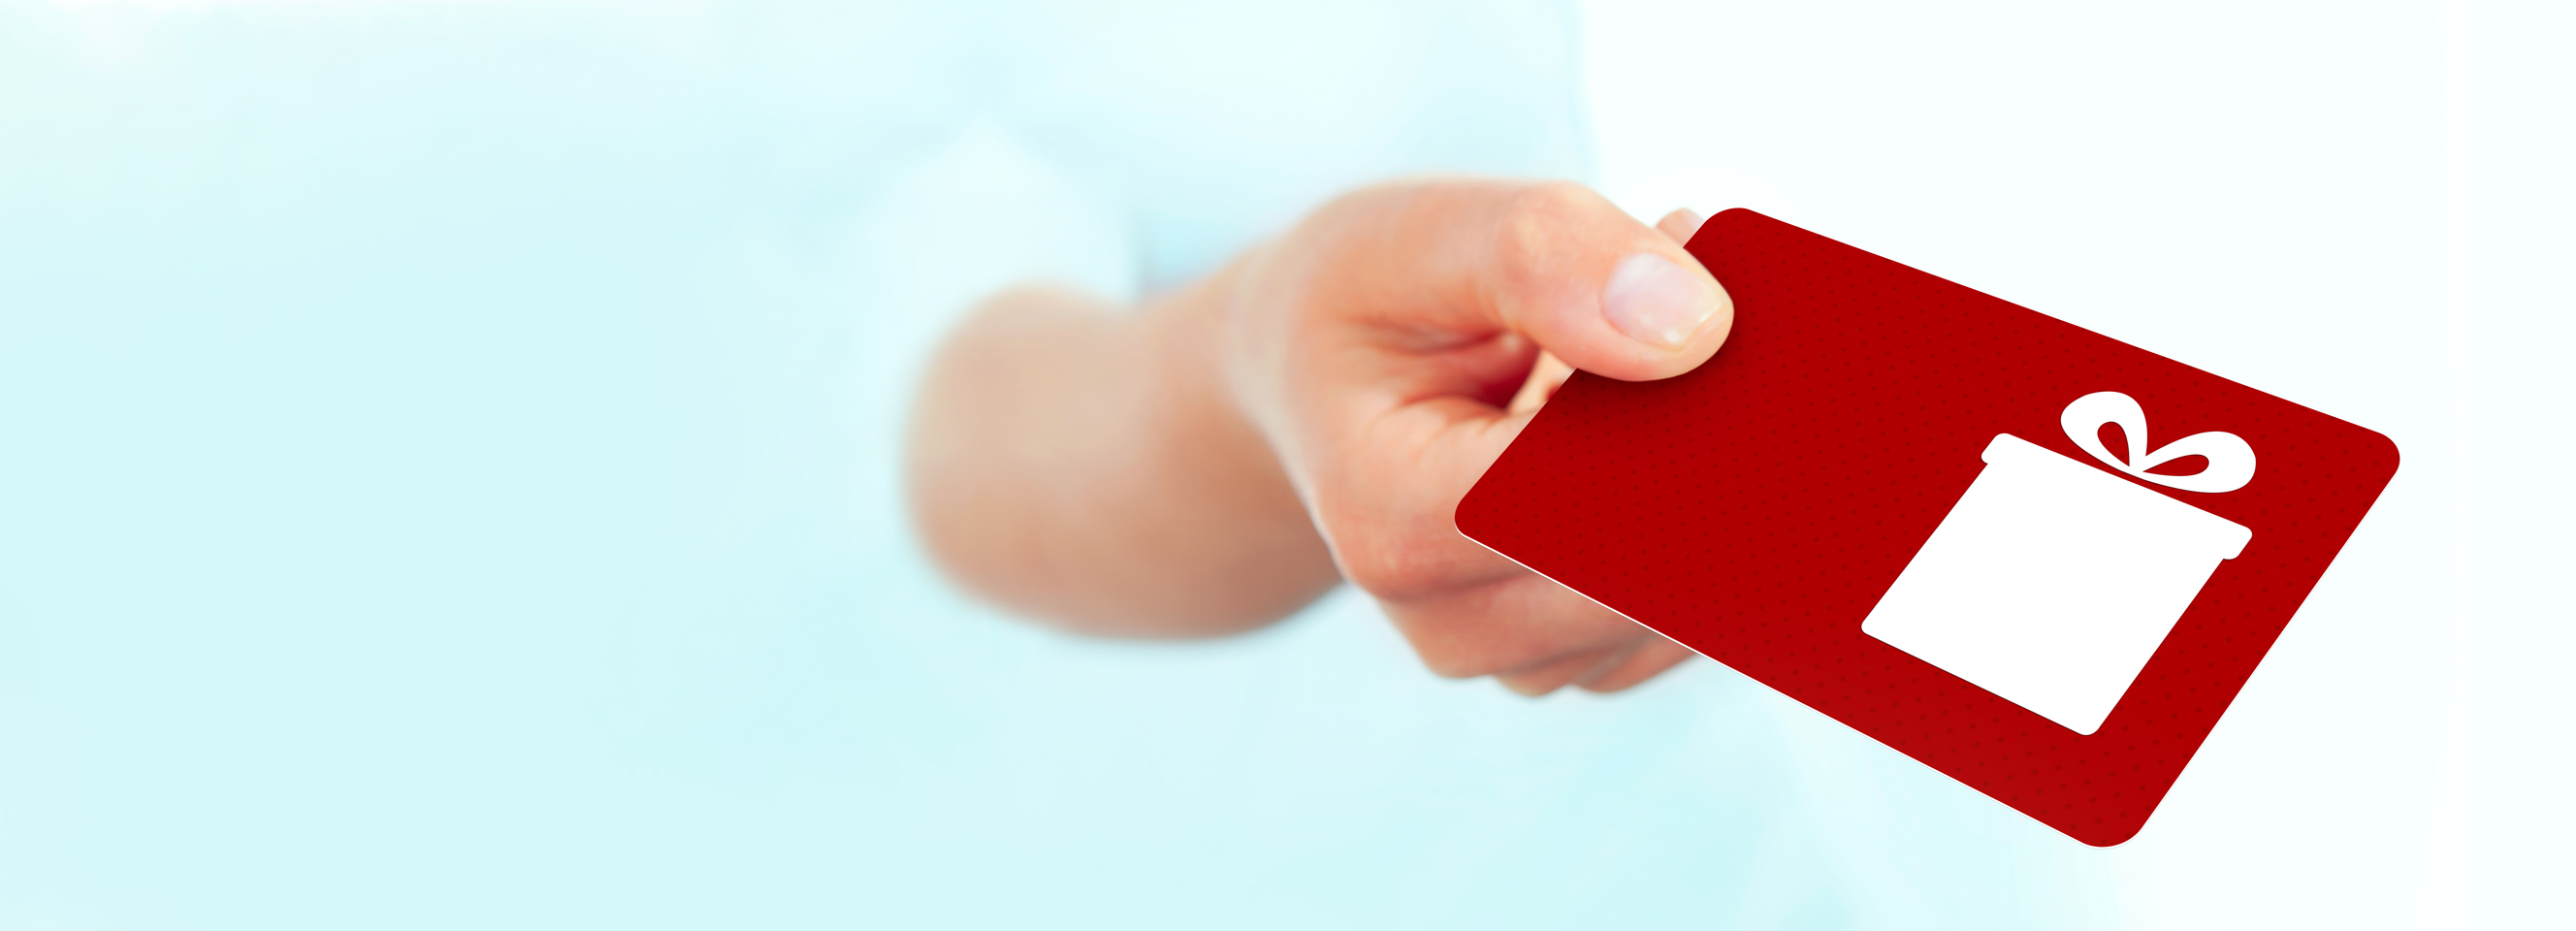 Vouchers and gift cards